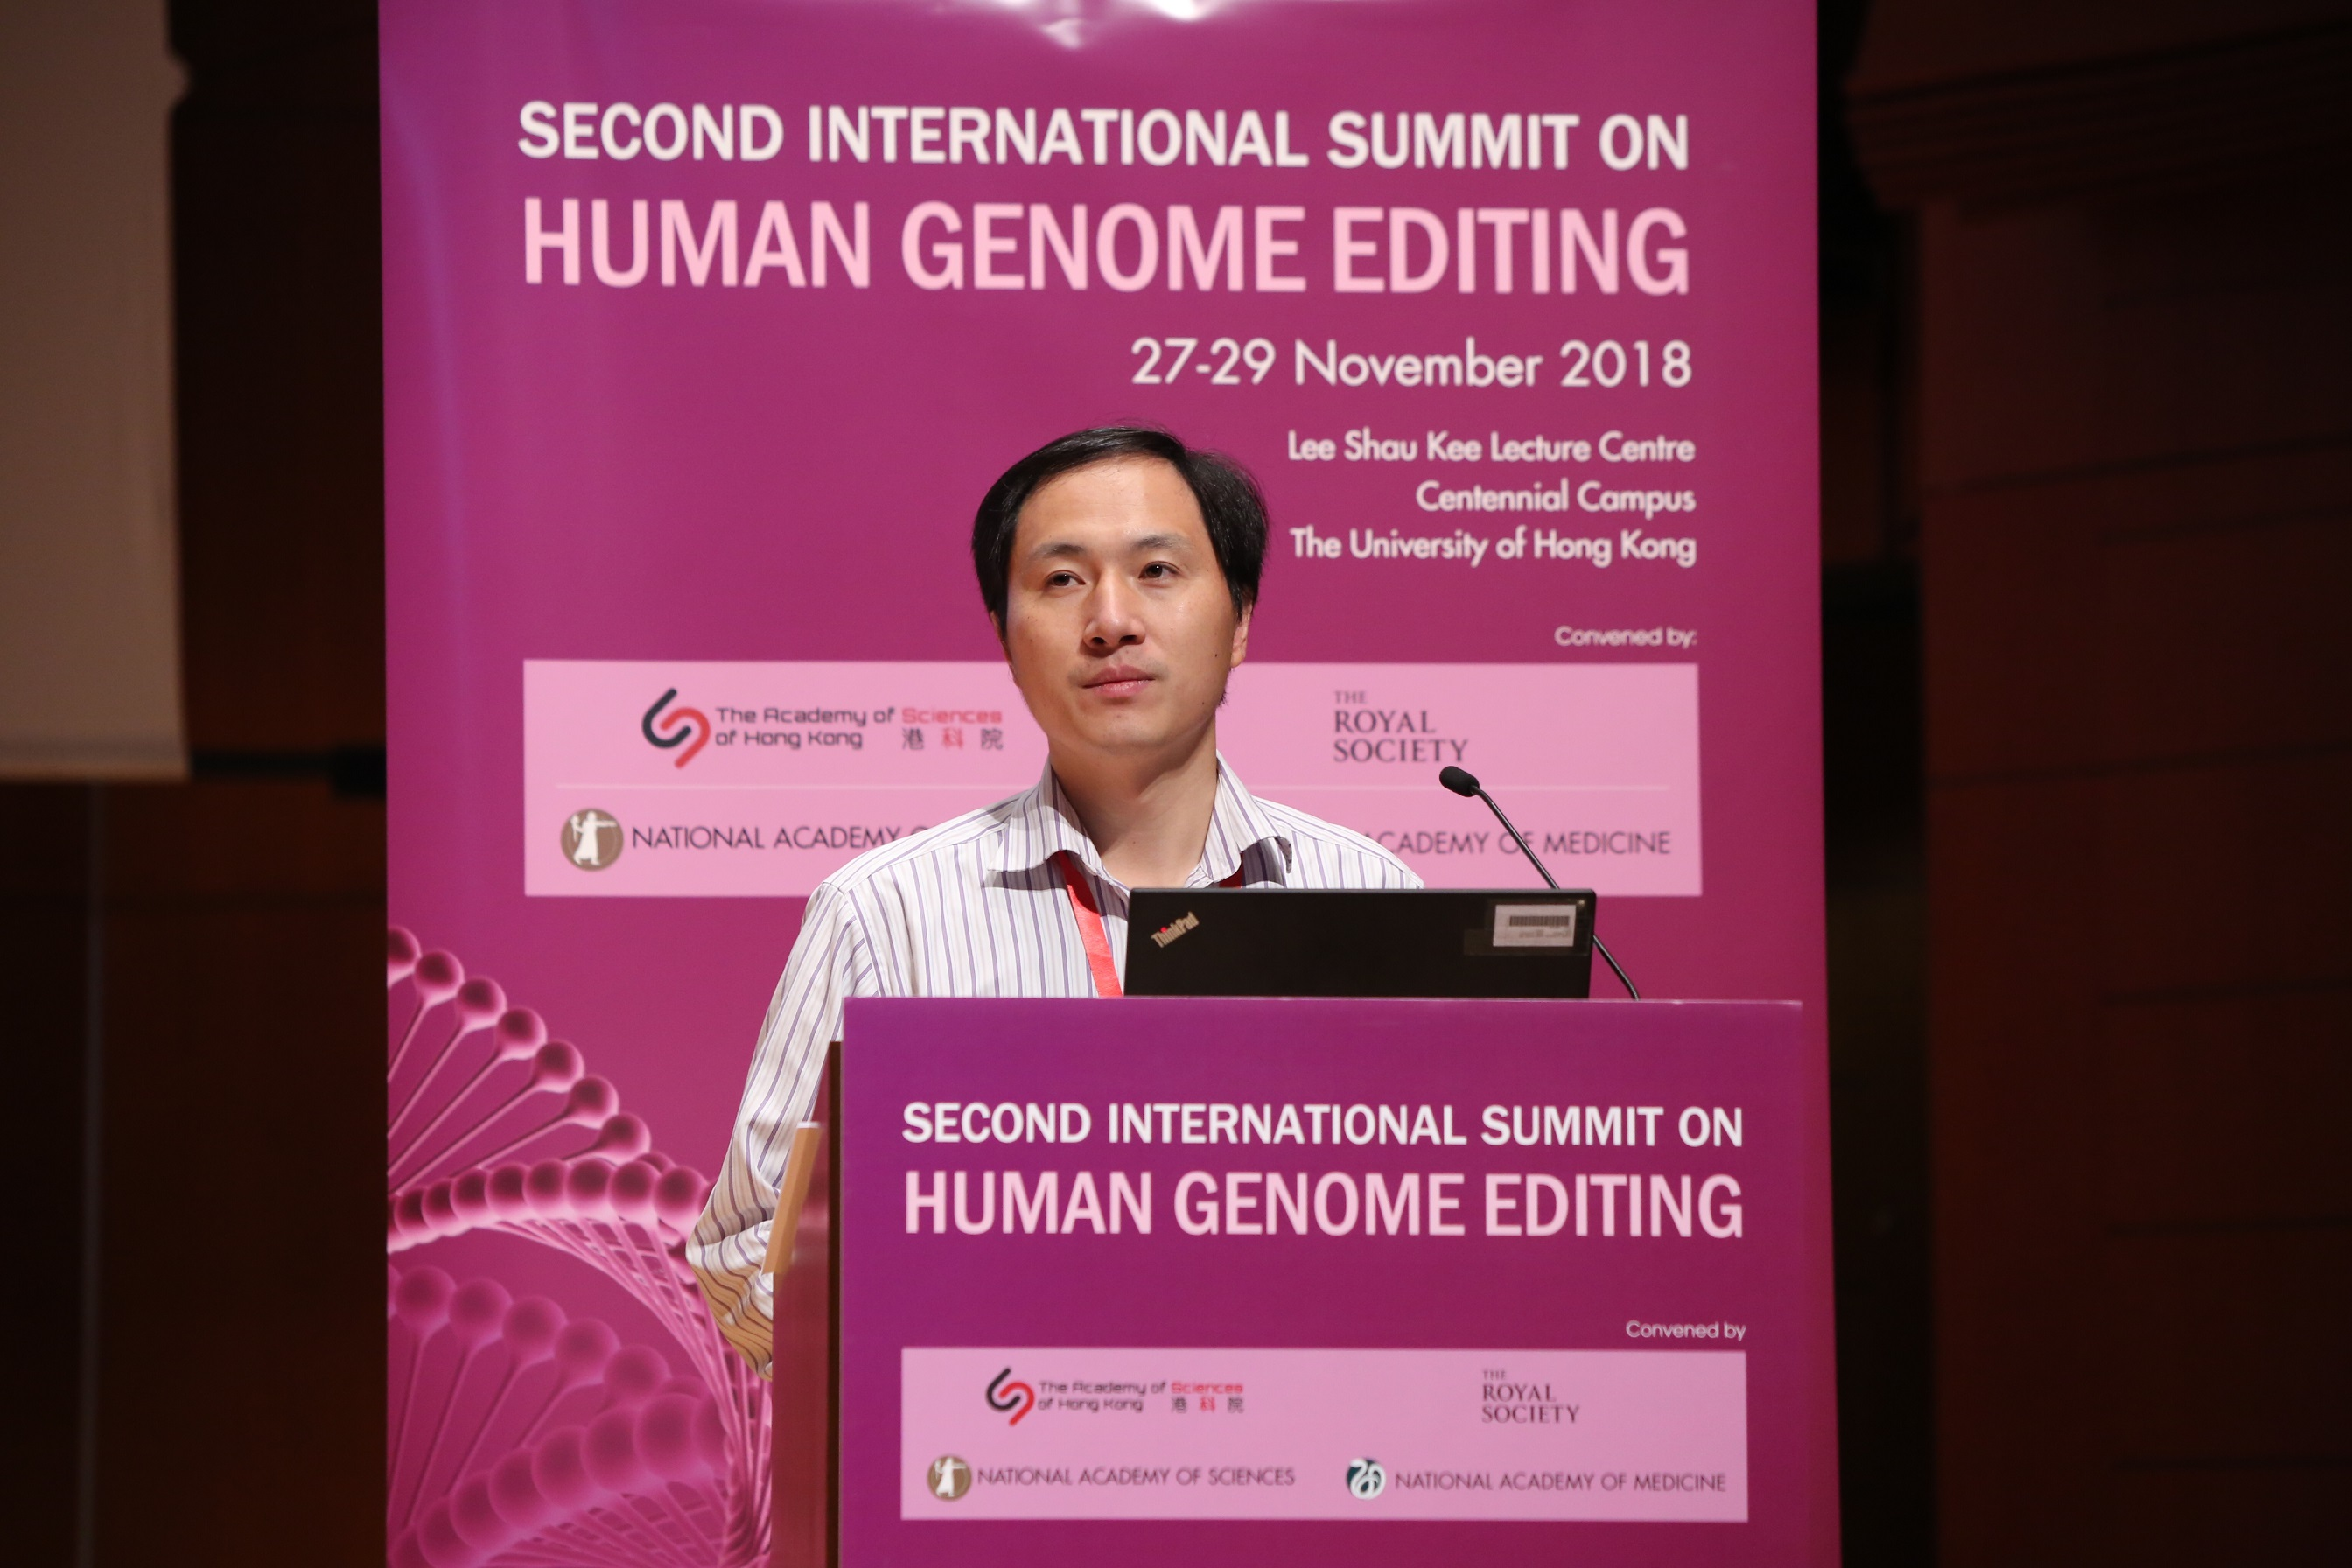 He Jiankui's Germline Editing Ethics Article Retracted by The CRISPR Journal | GEN - Genetic Engineering and Biotechnology News